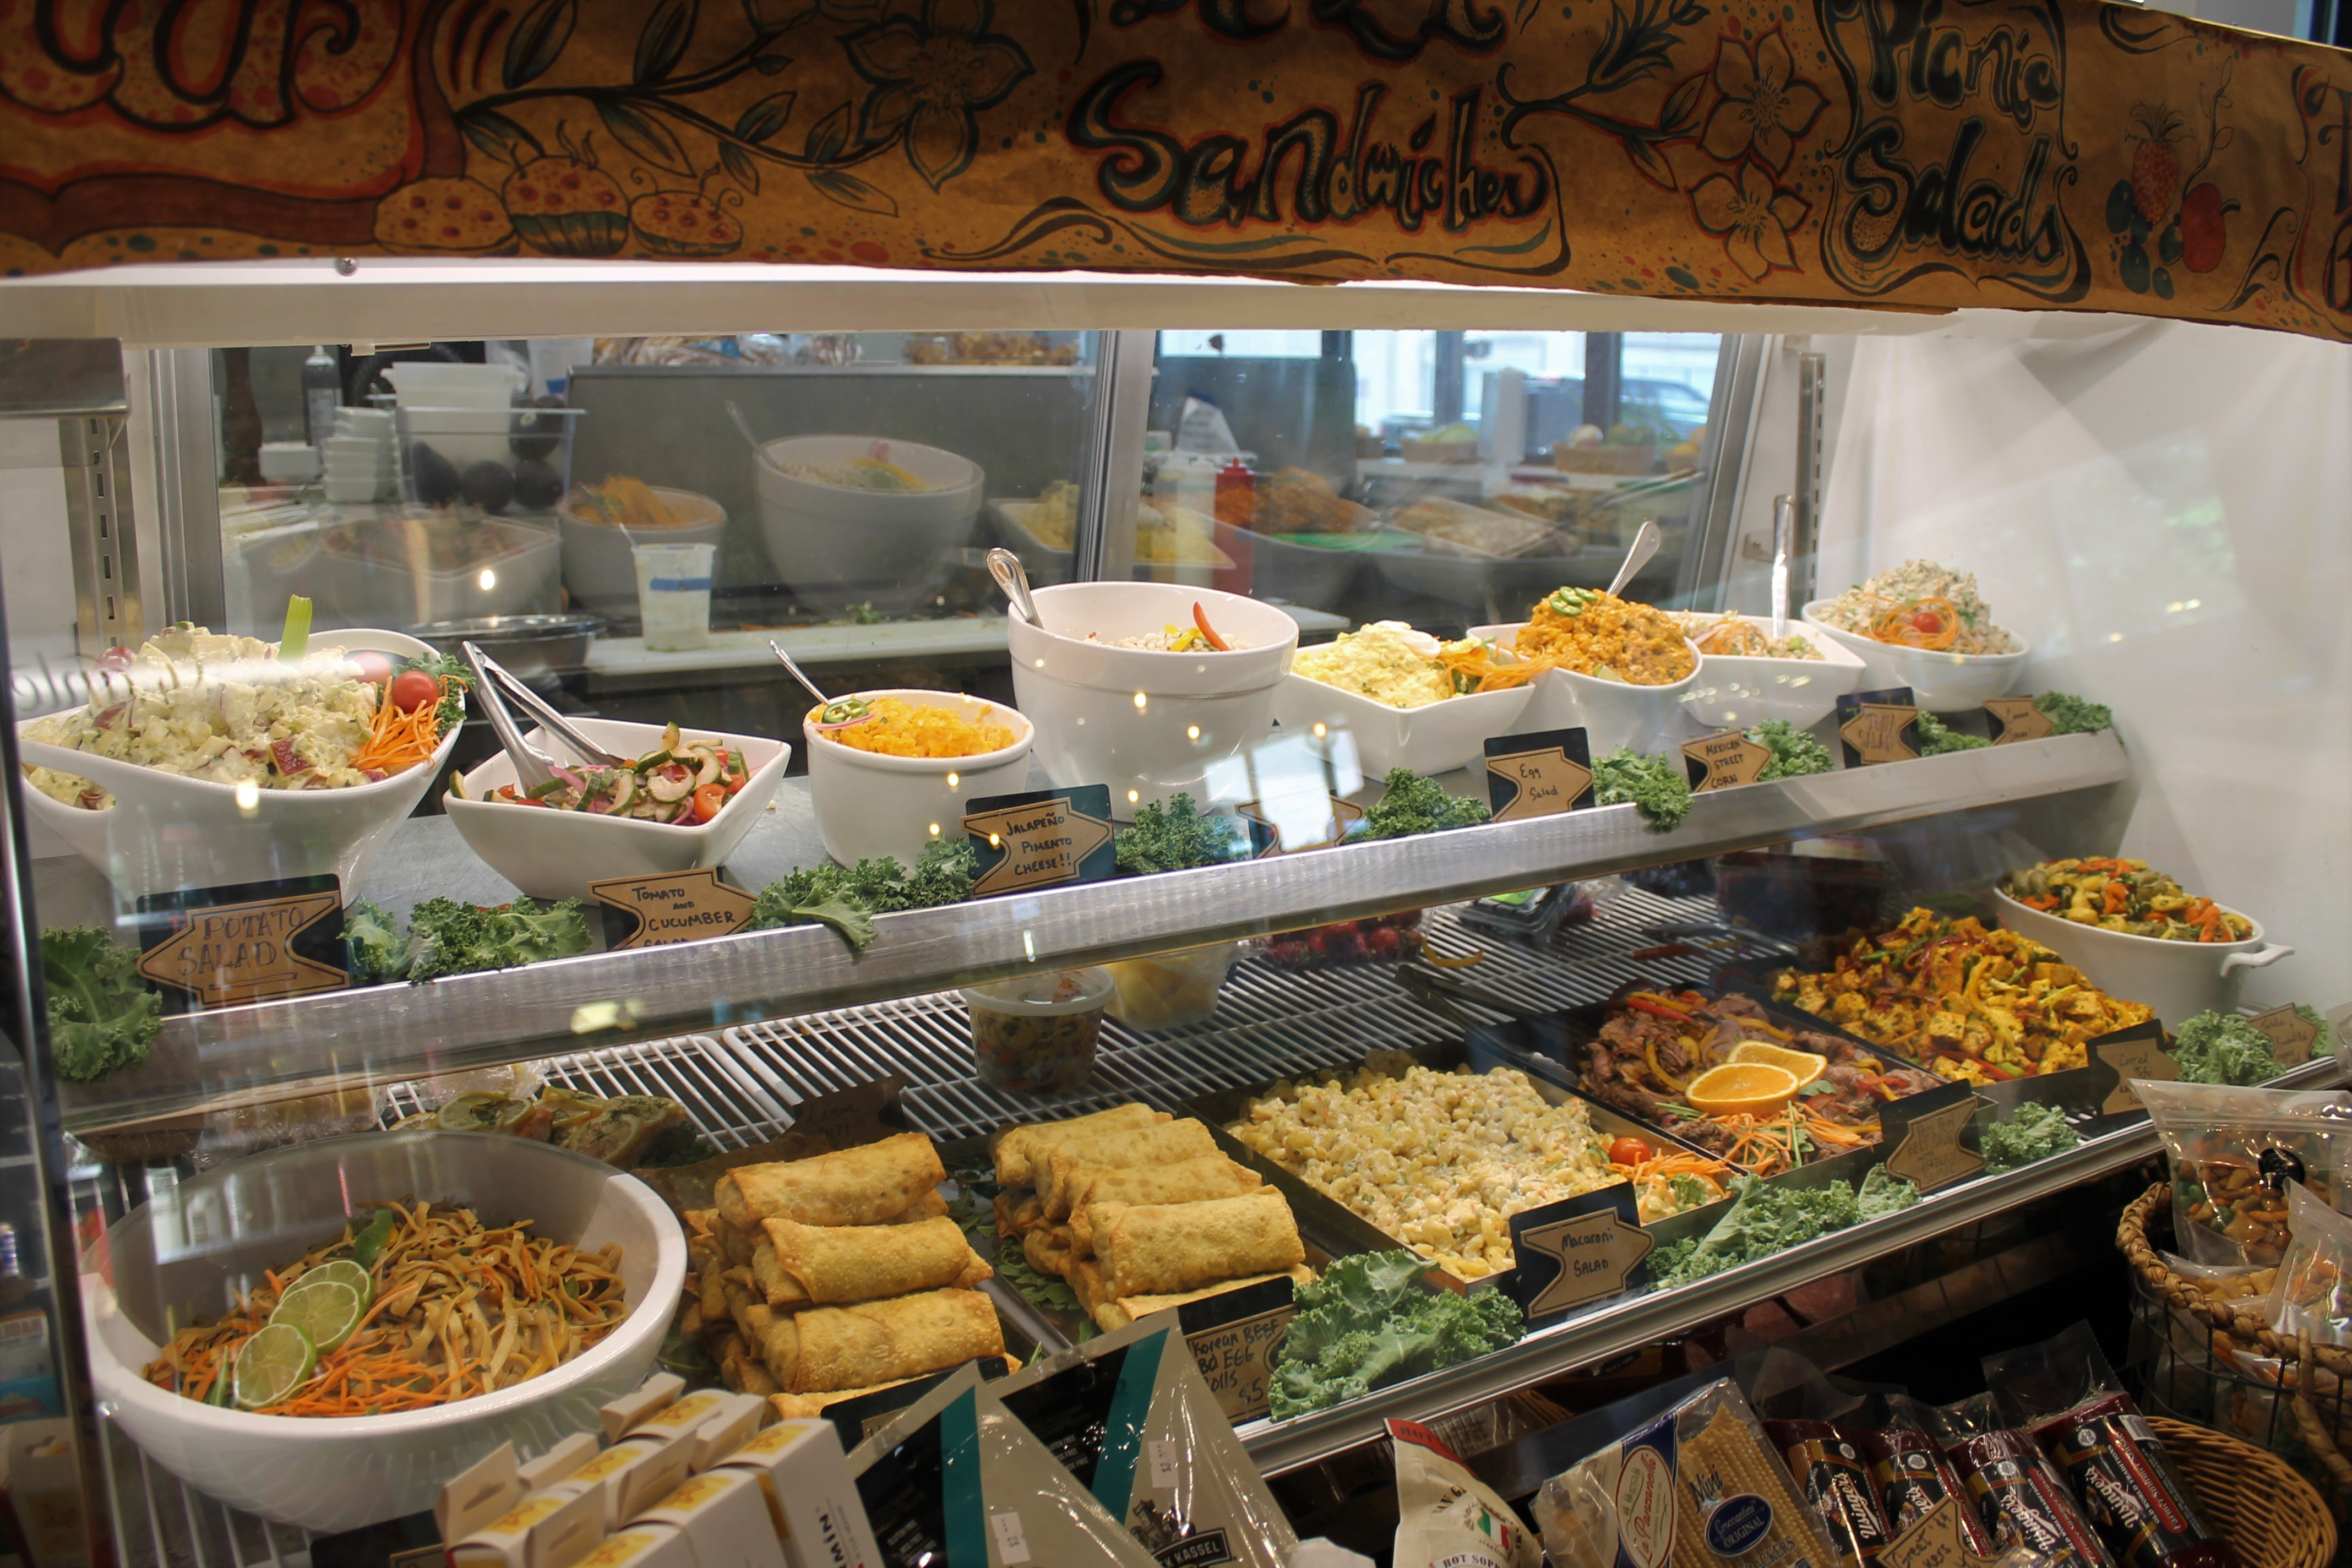 Food counter with walk out lunch options in canteen market